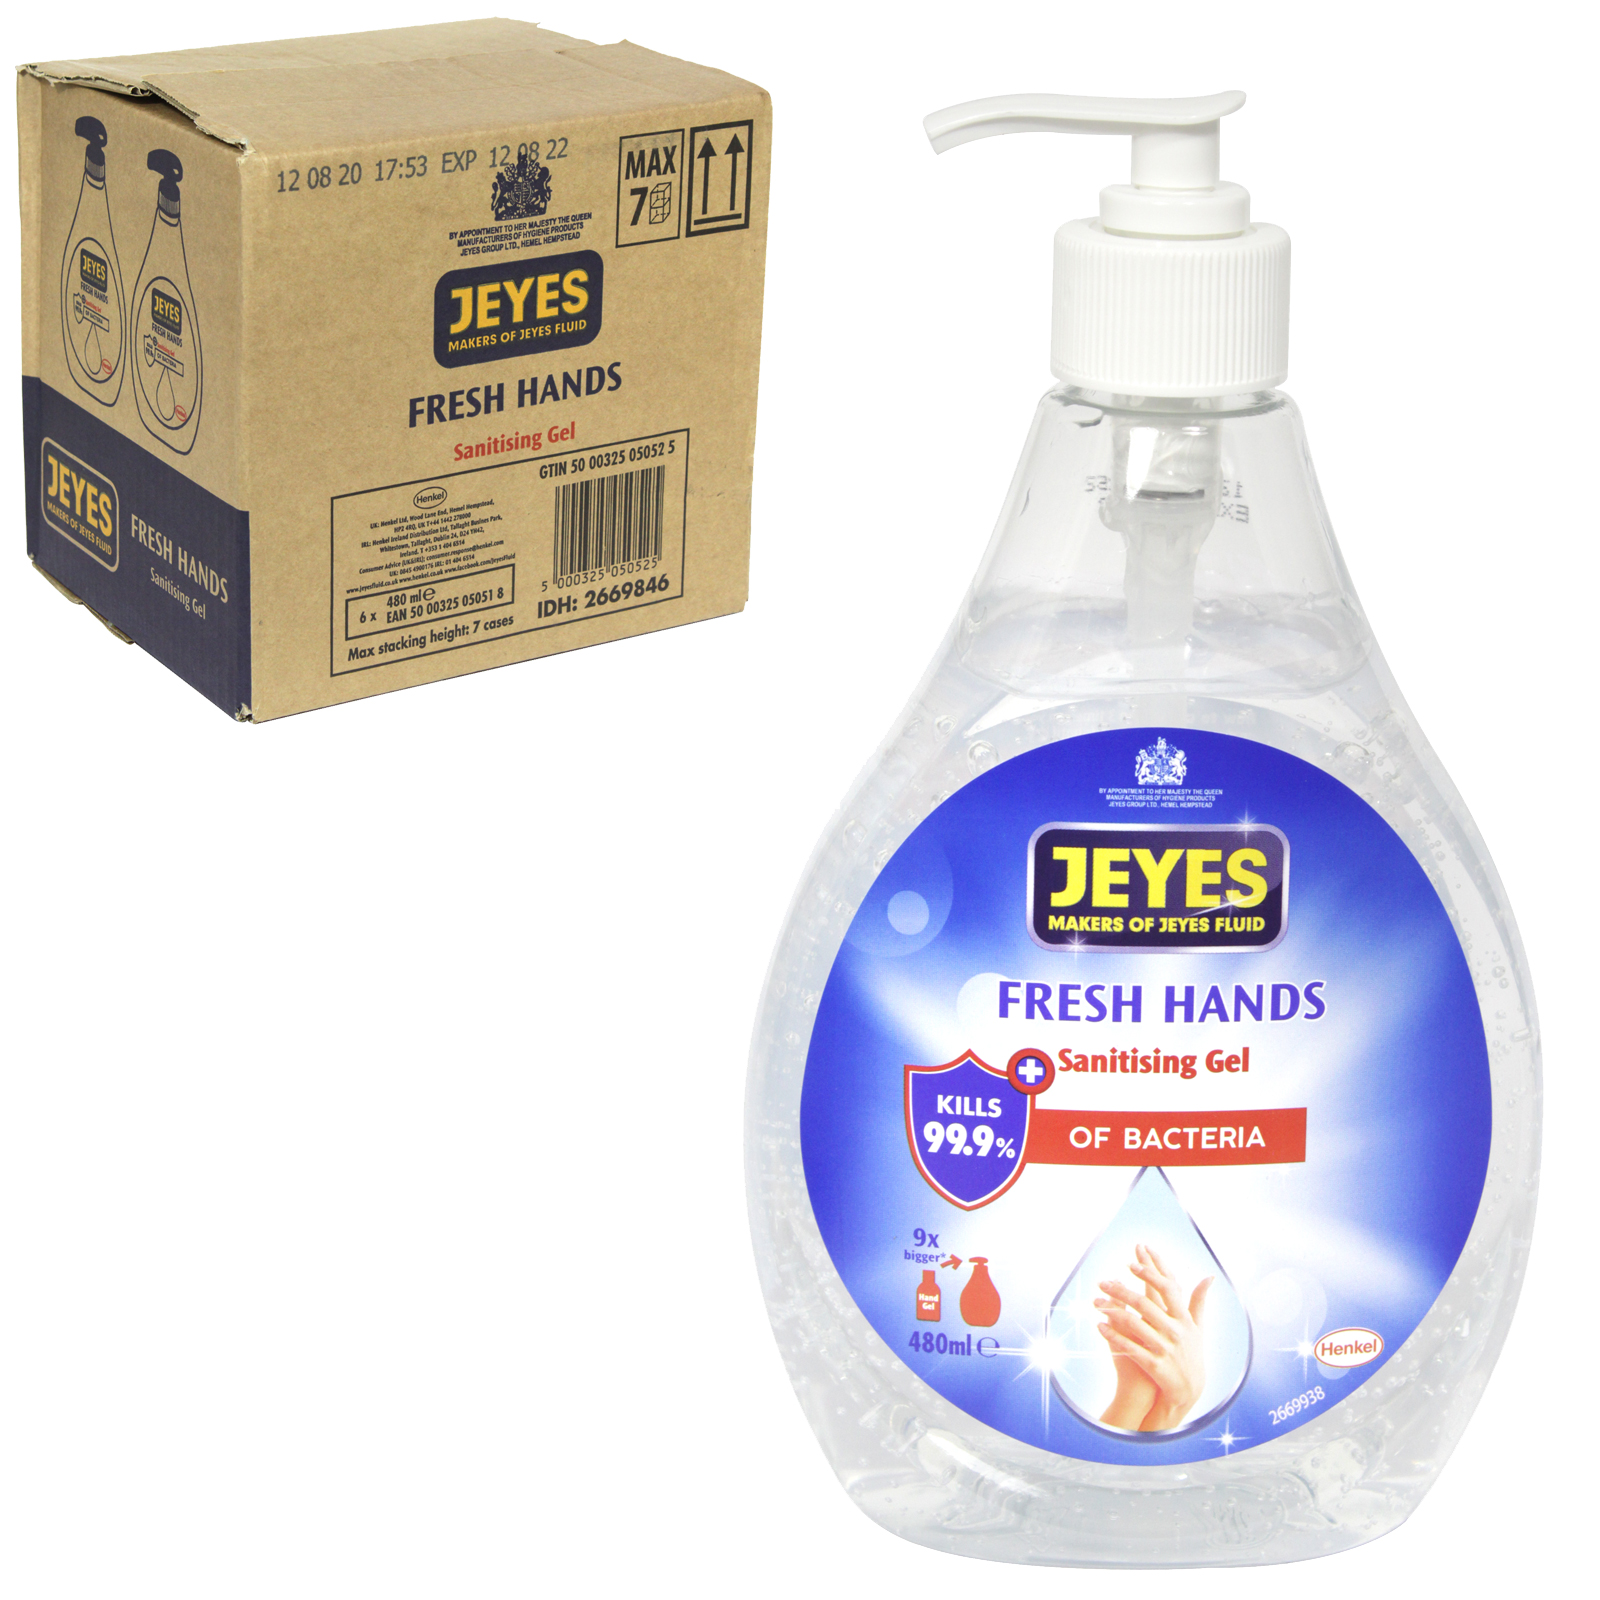 JEYES FRESH HANDS SANITISING HAND GEL 480ML PUMP 65% ALCOHOL X6